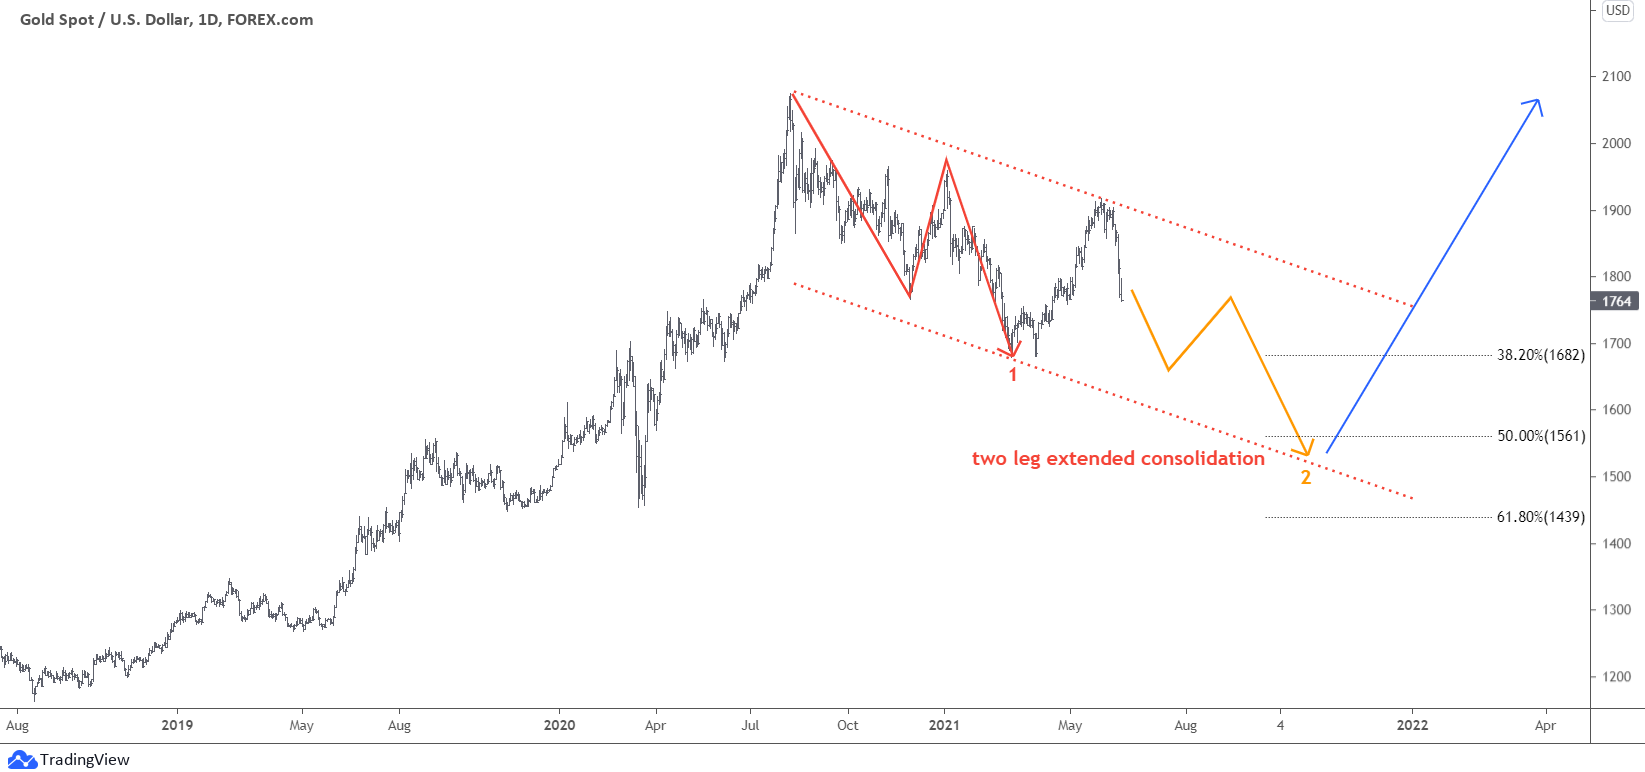 Daily Chart Gold